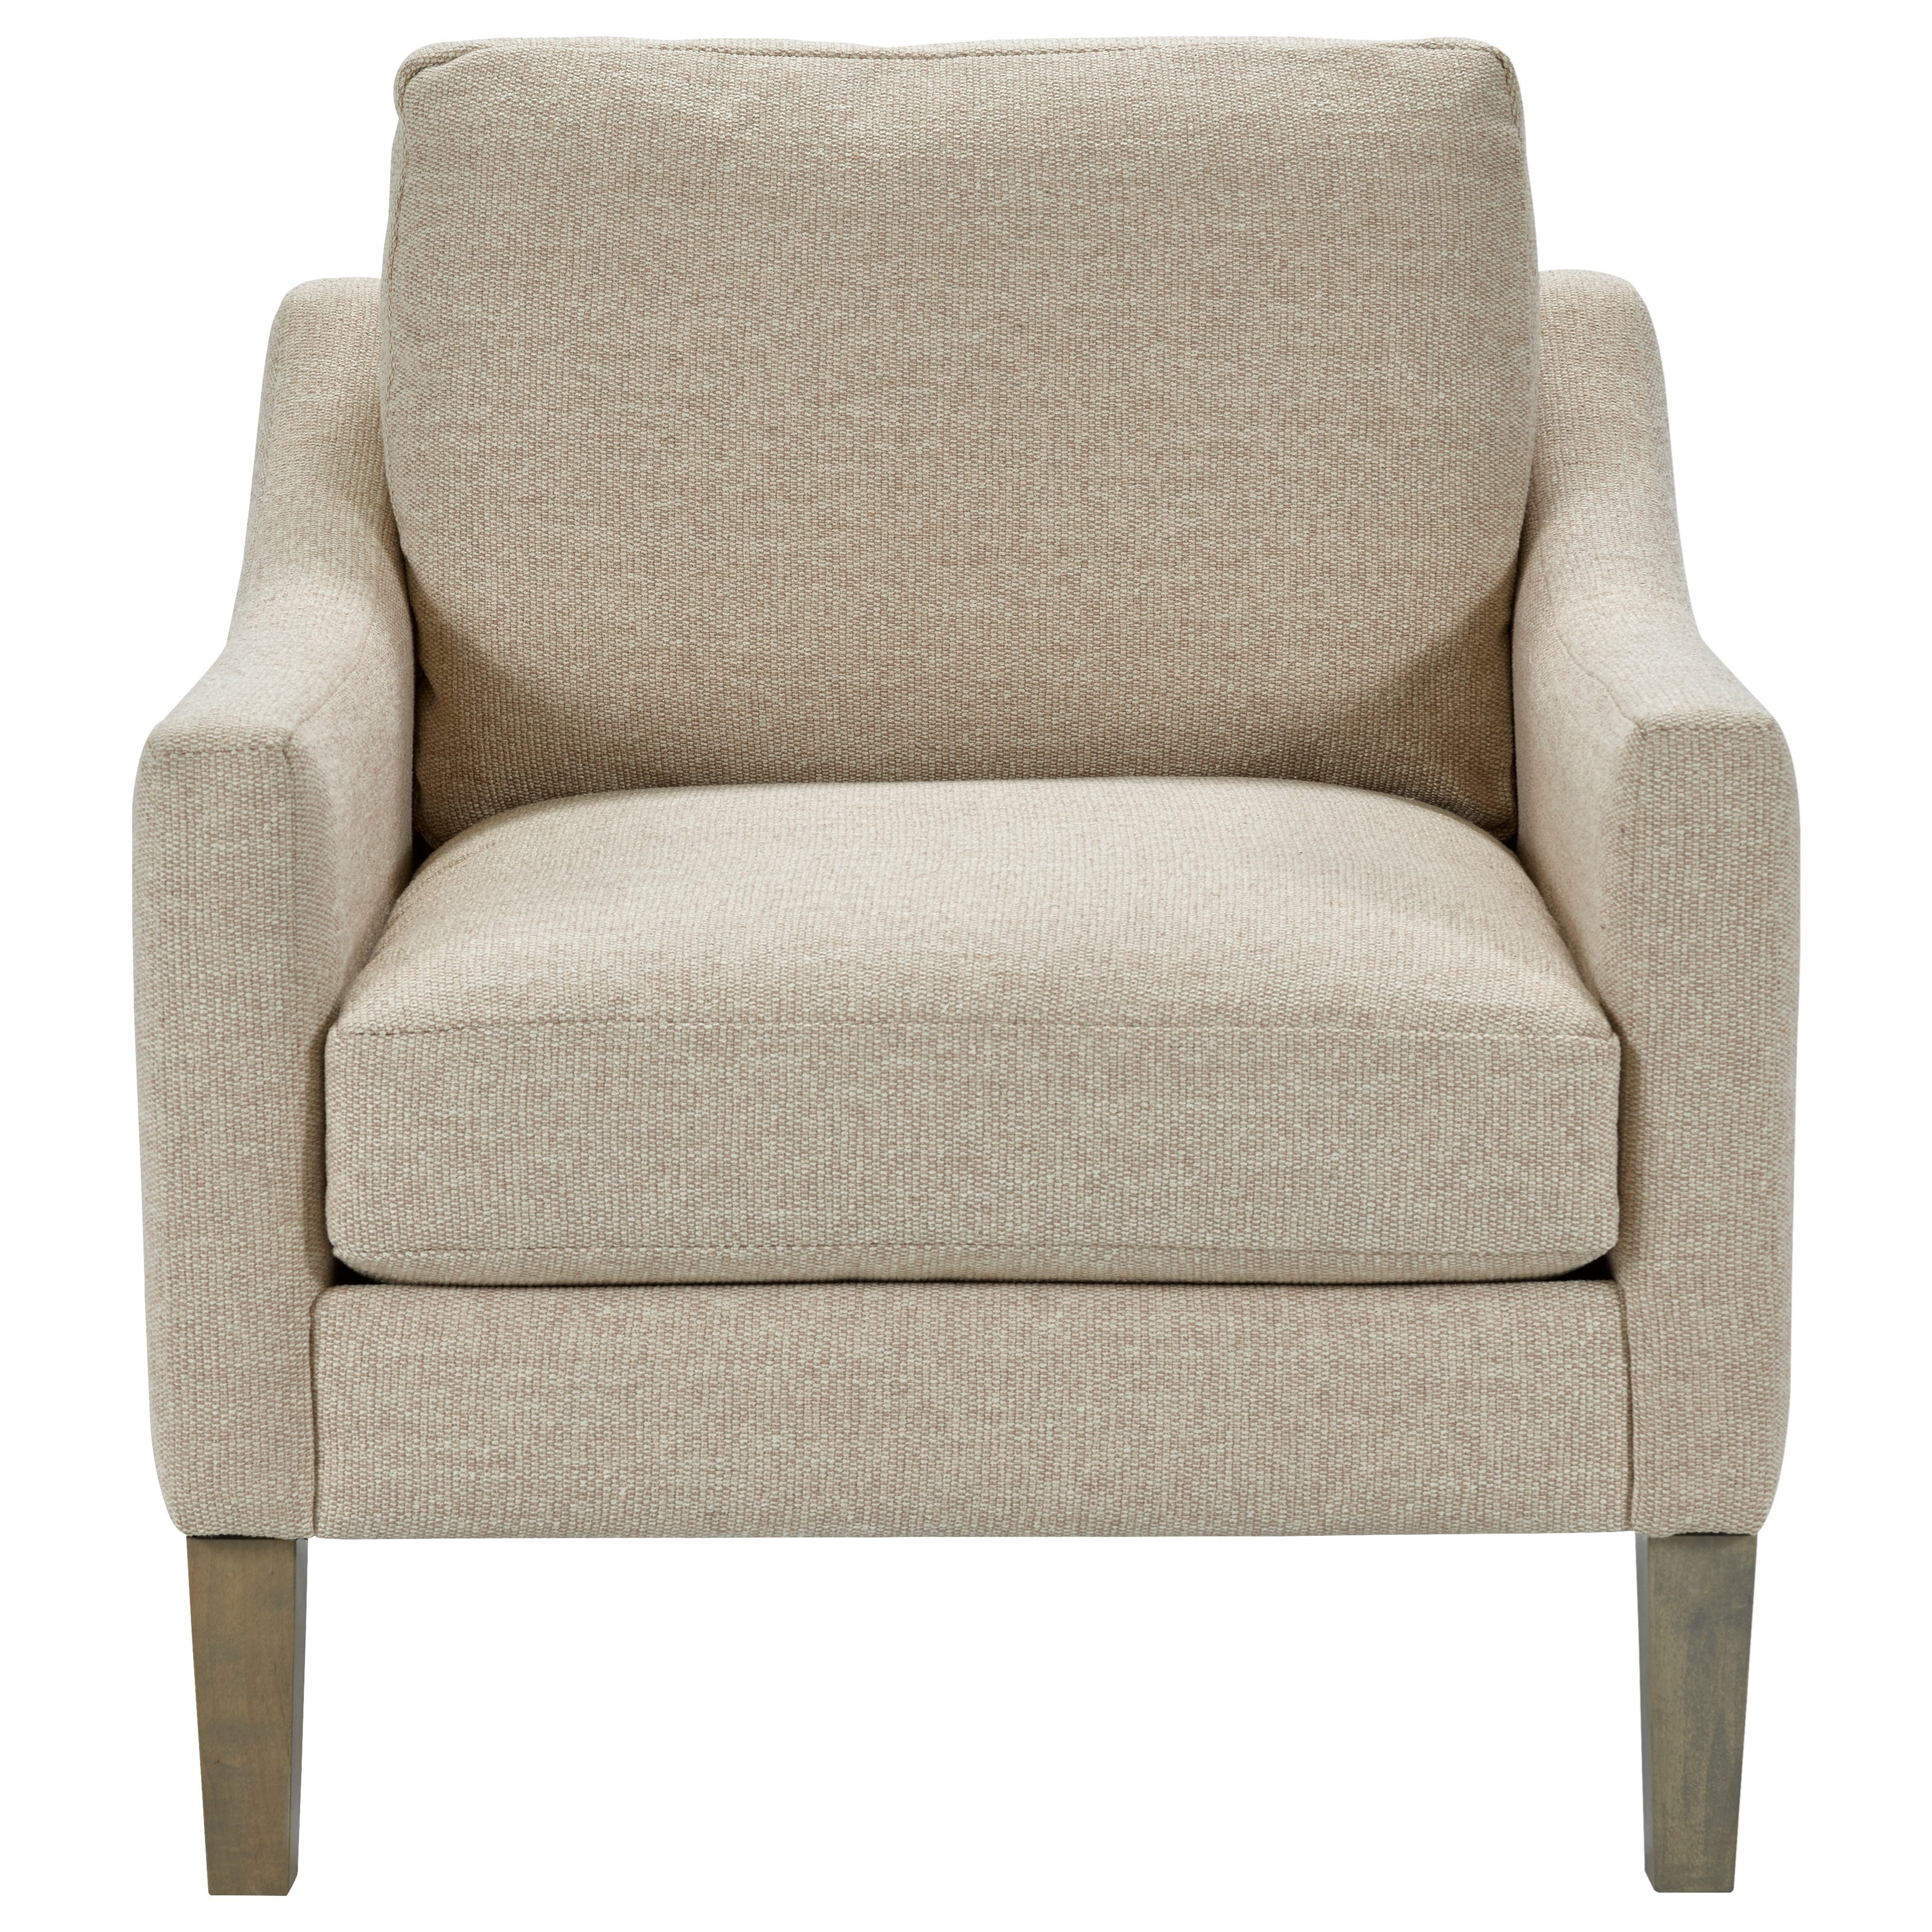 Saturday Up-Slope Arm Chair